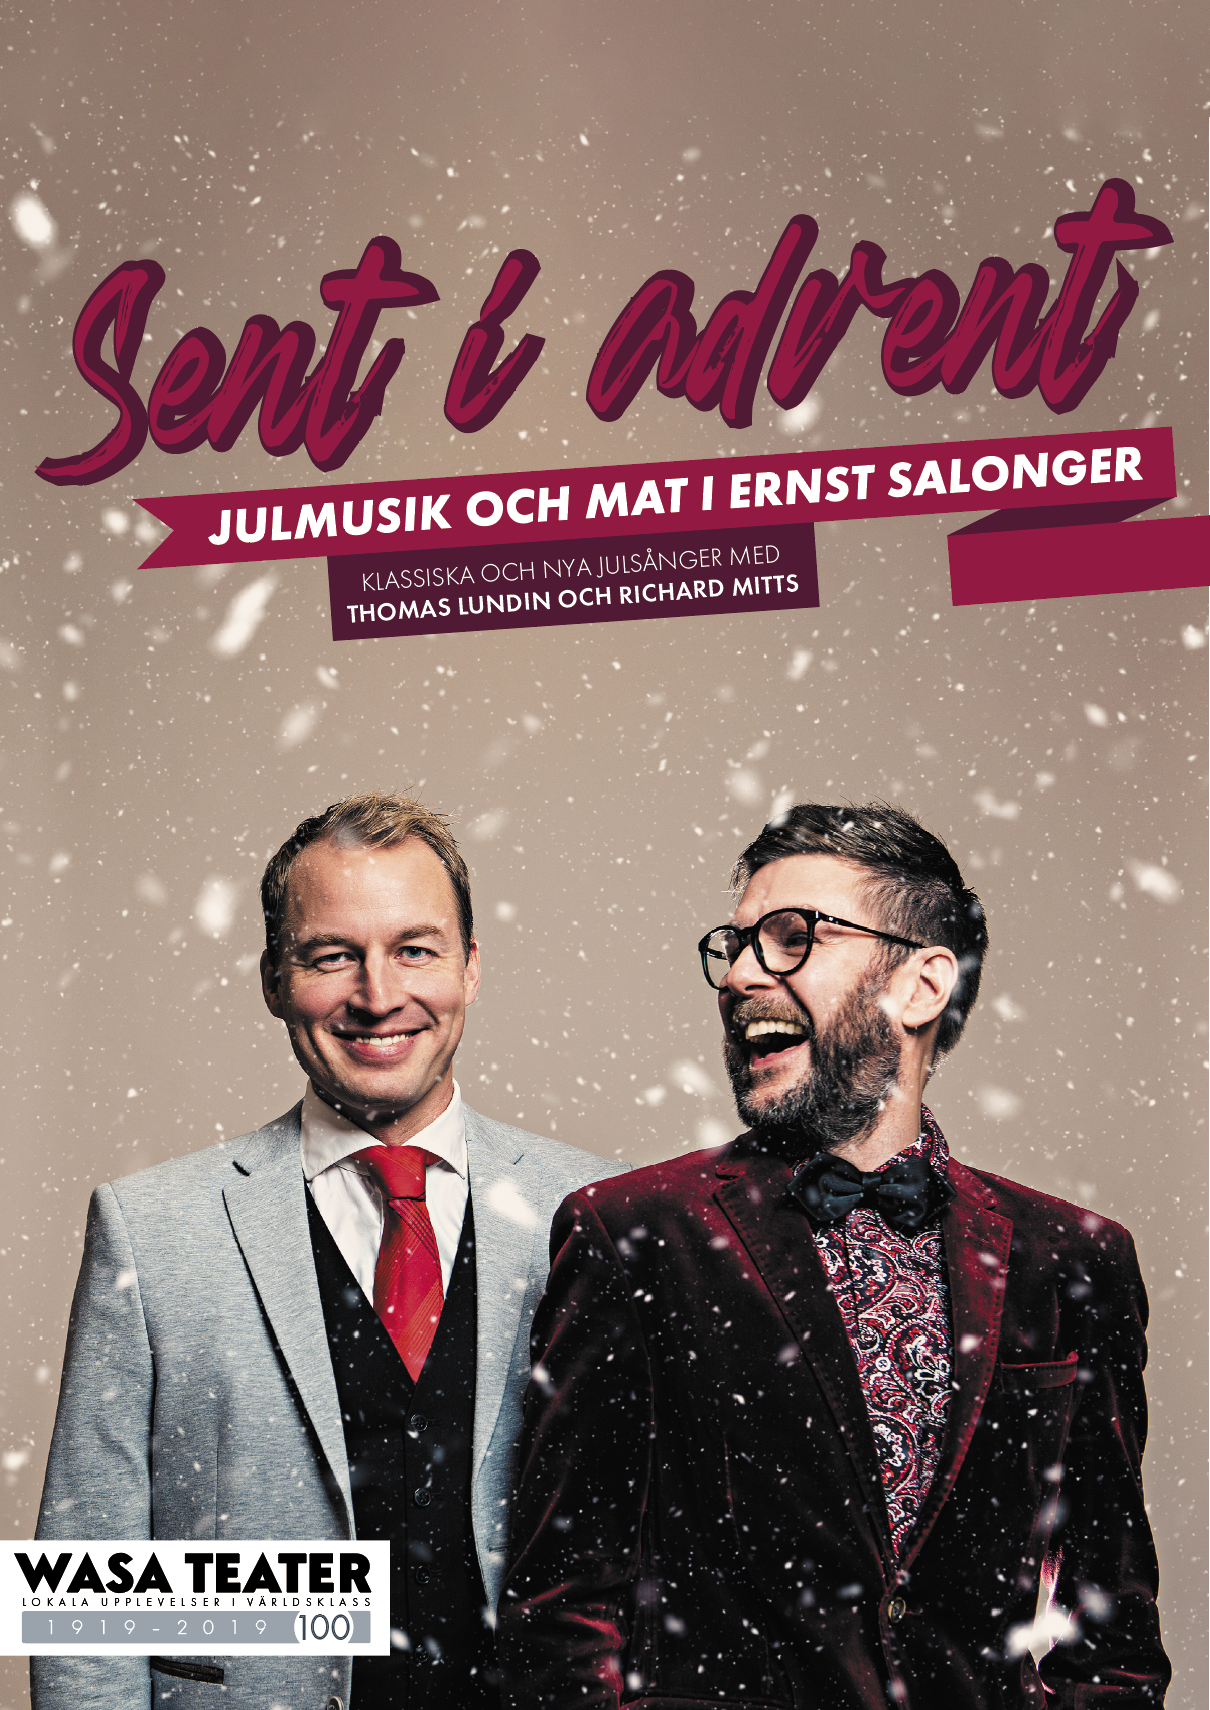 Sent i advent